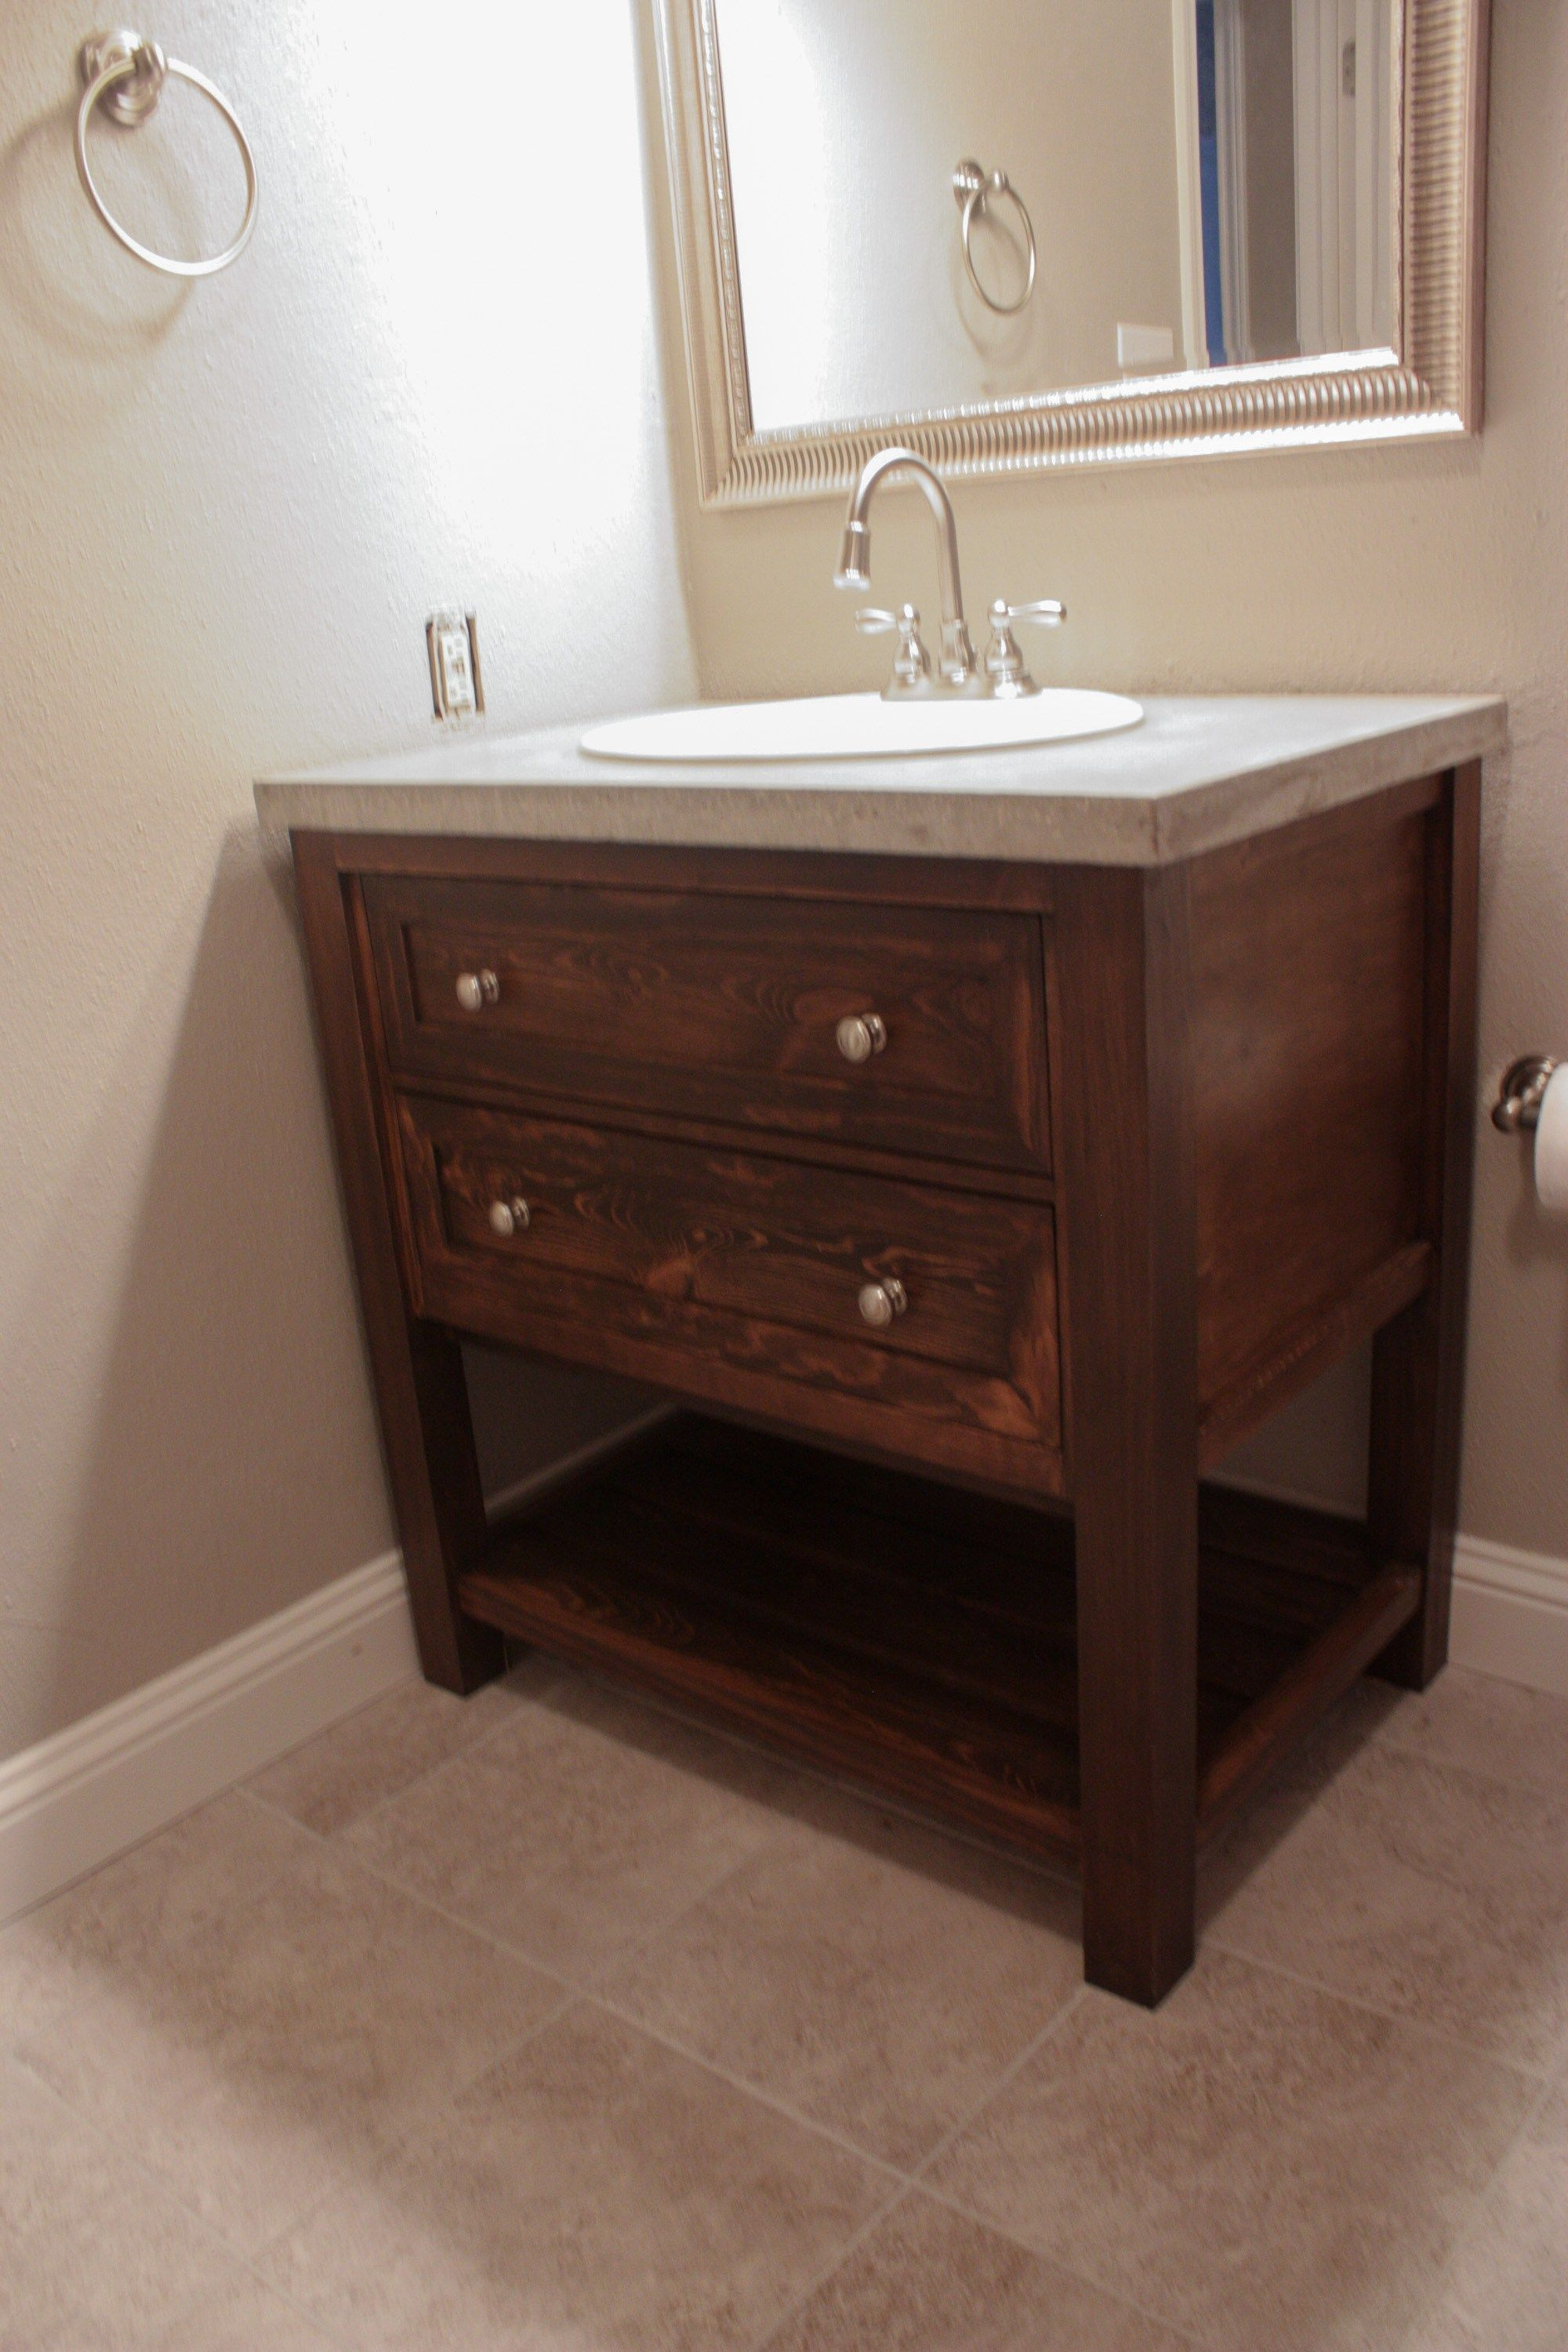 Diy Bathroom Vanity Pottery Barn Knockoff Pottery Barn Vanity Diy Bathroom Vanity Bathroom Sink Vanity